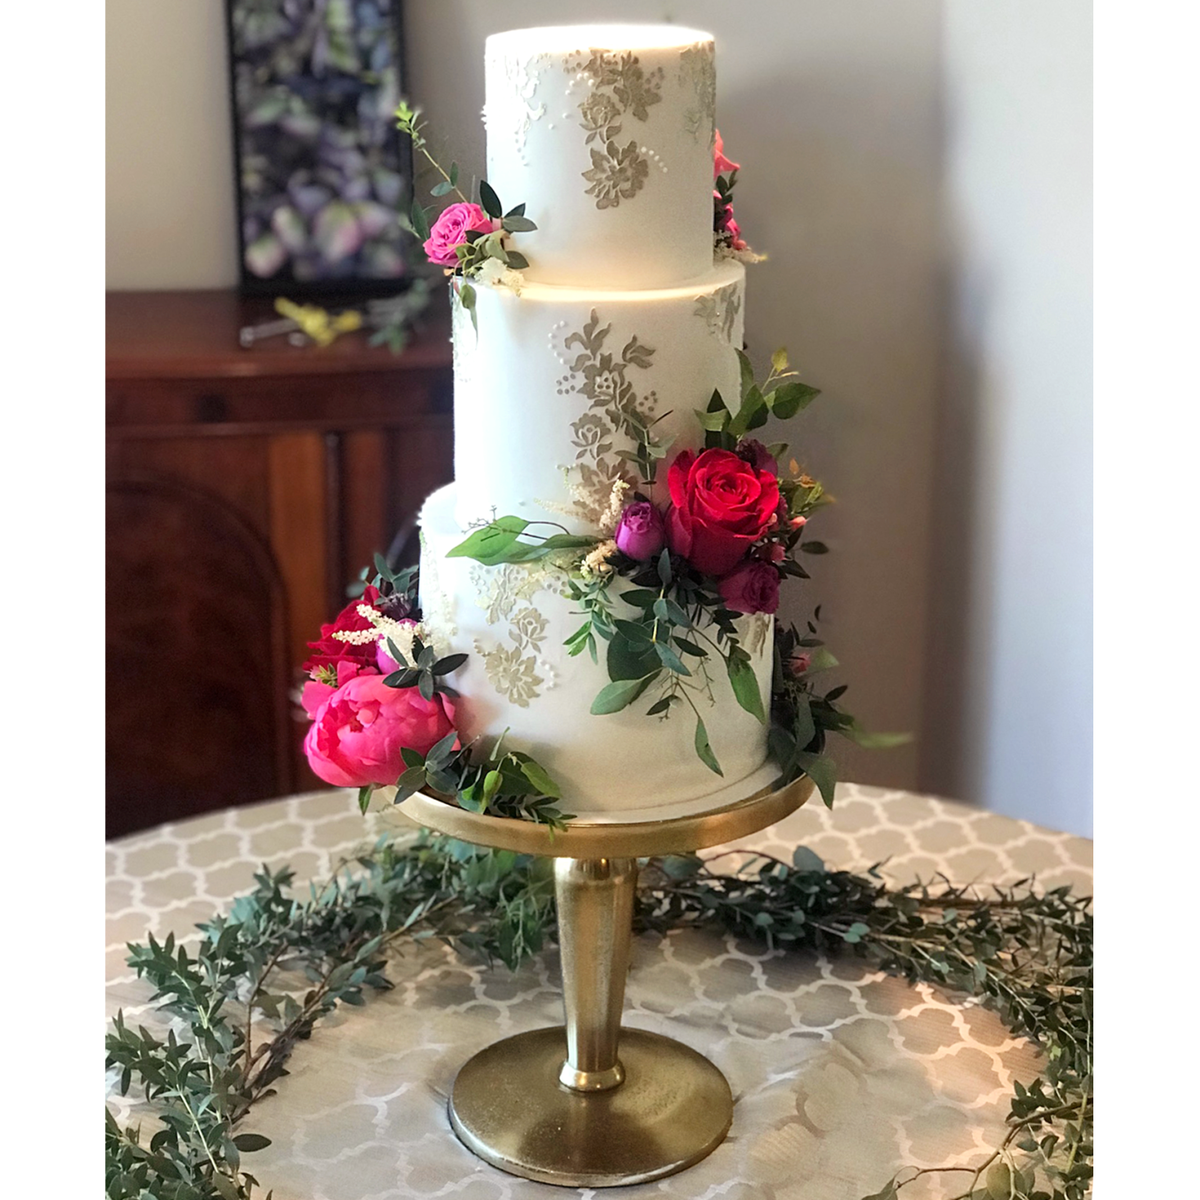 Whippt Desserts - Wedding Cake gold lace - Middle